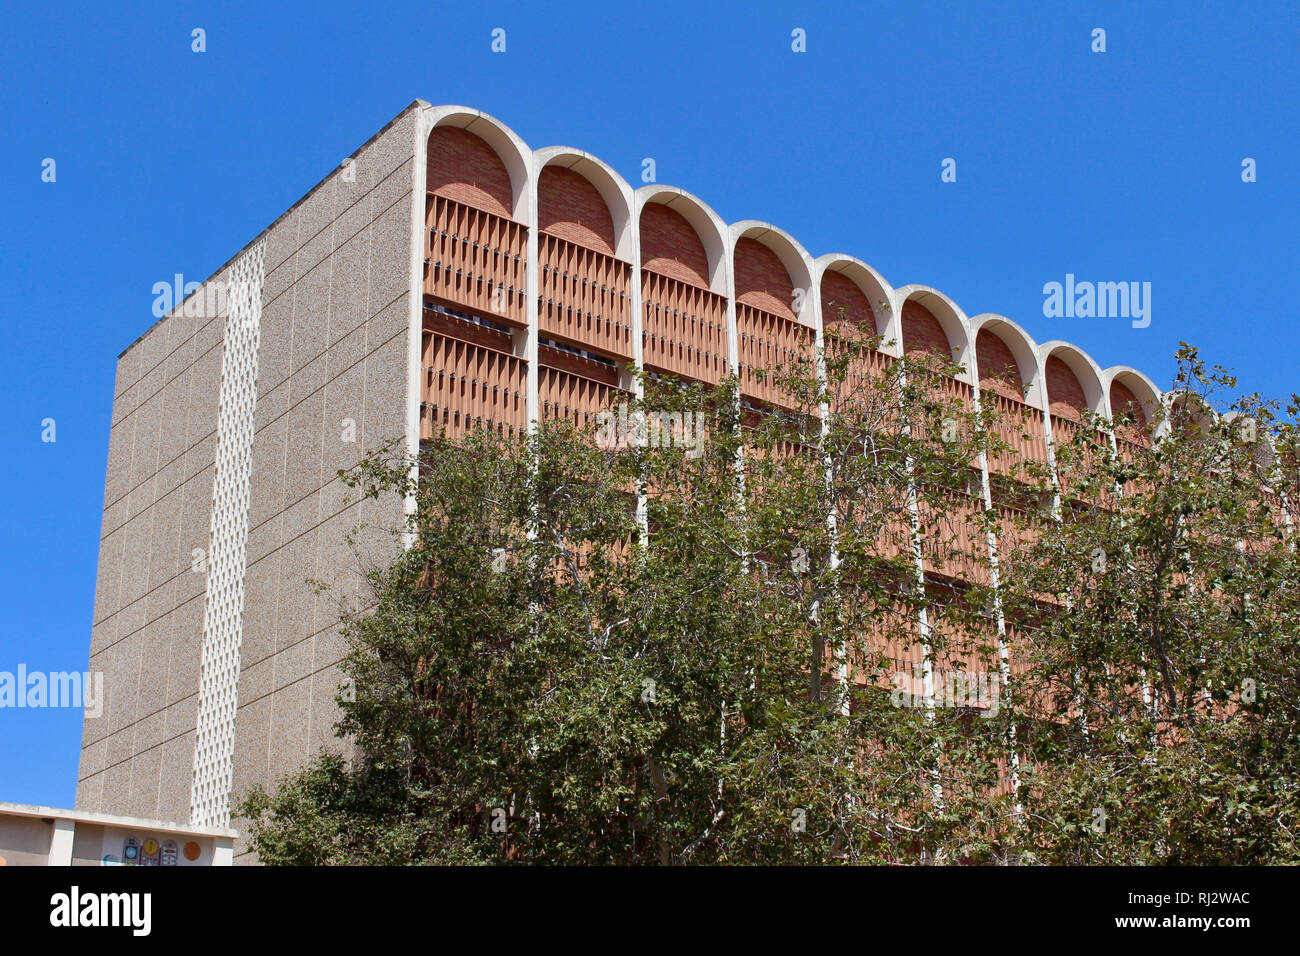 Los Angeles, California, USA. 27 July, 2017. Mathematics Building on the campus of The University of California, Los Angeles (UCLA). - Stock Image